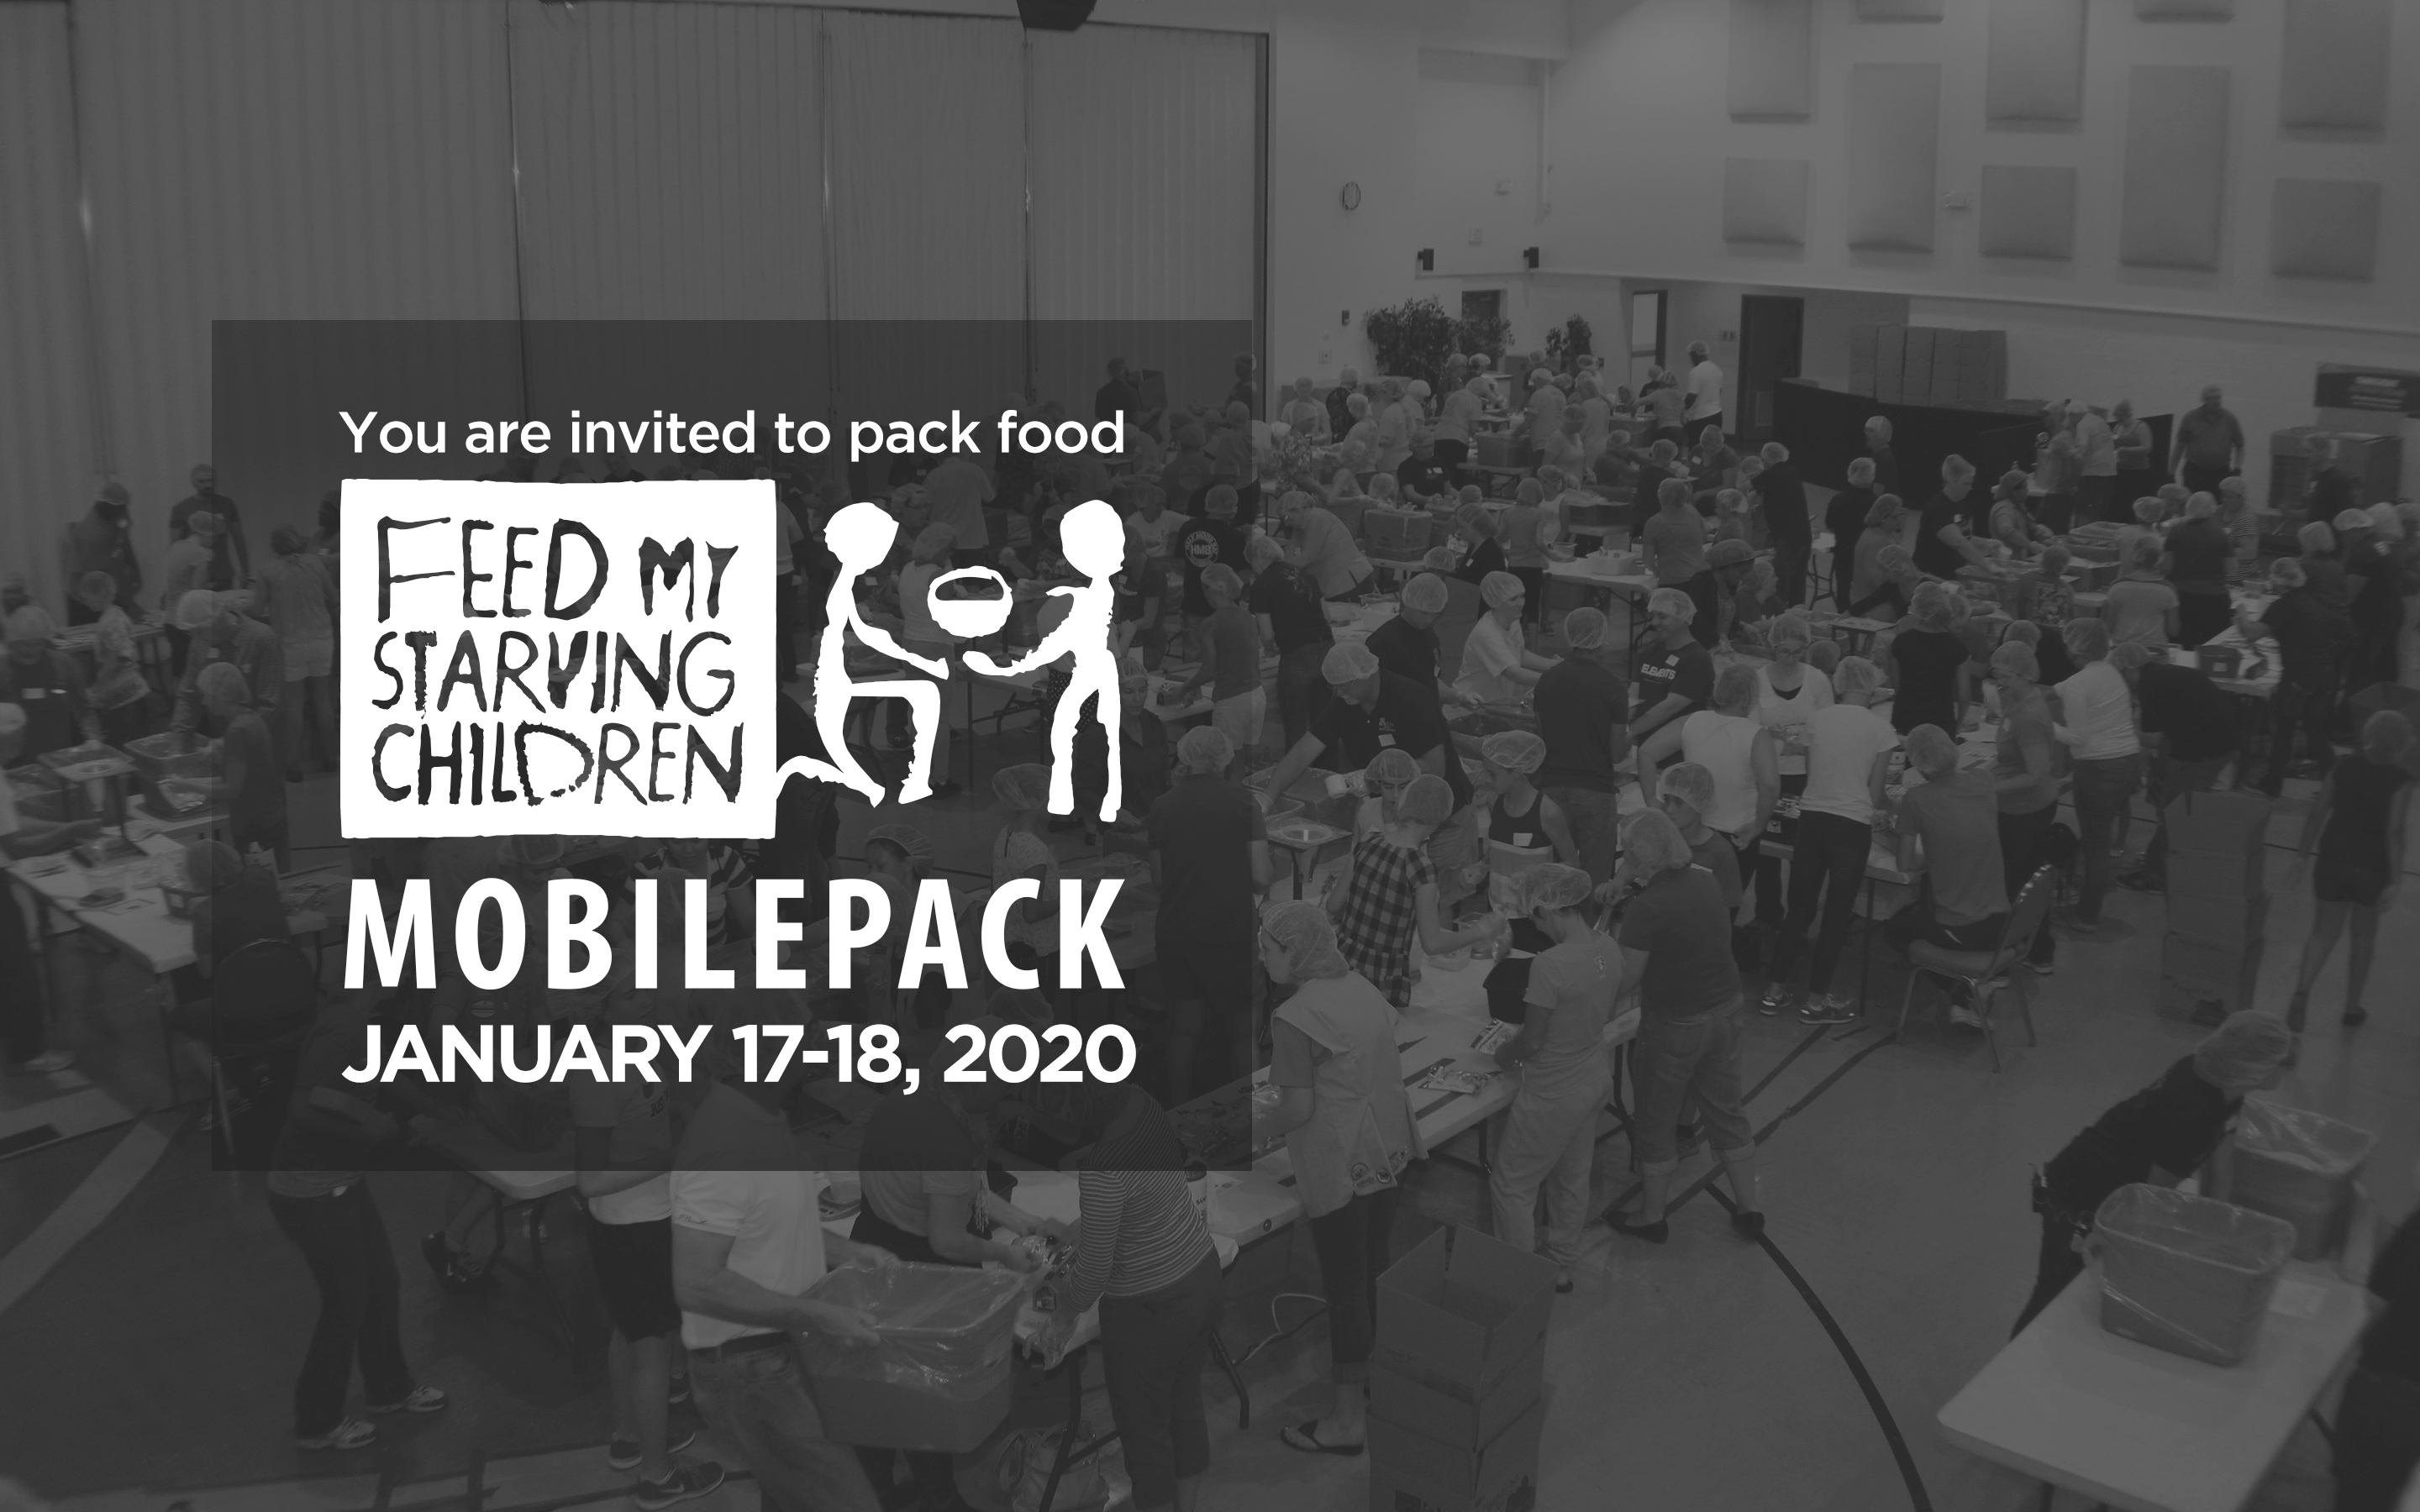 Image: Feed My Starving Children 2020